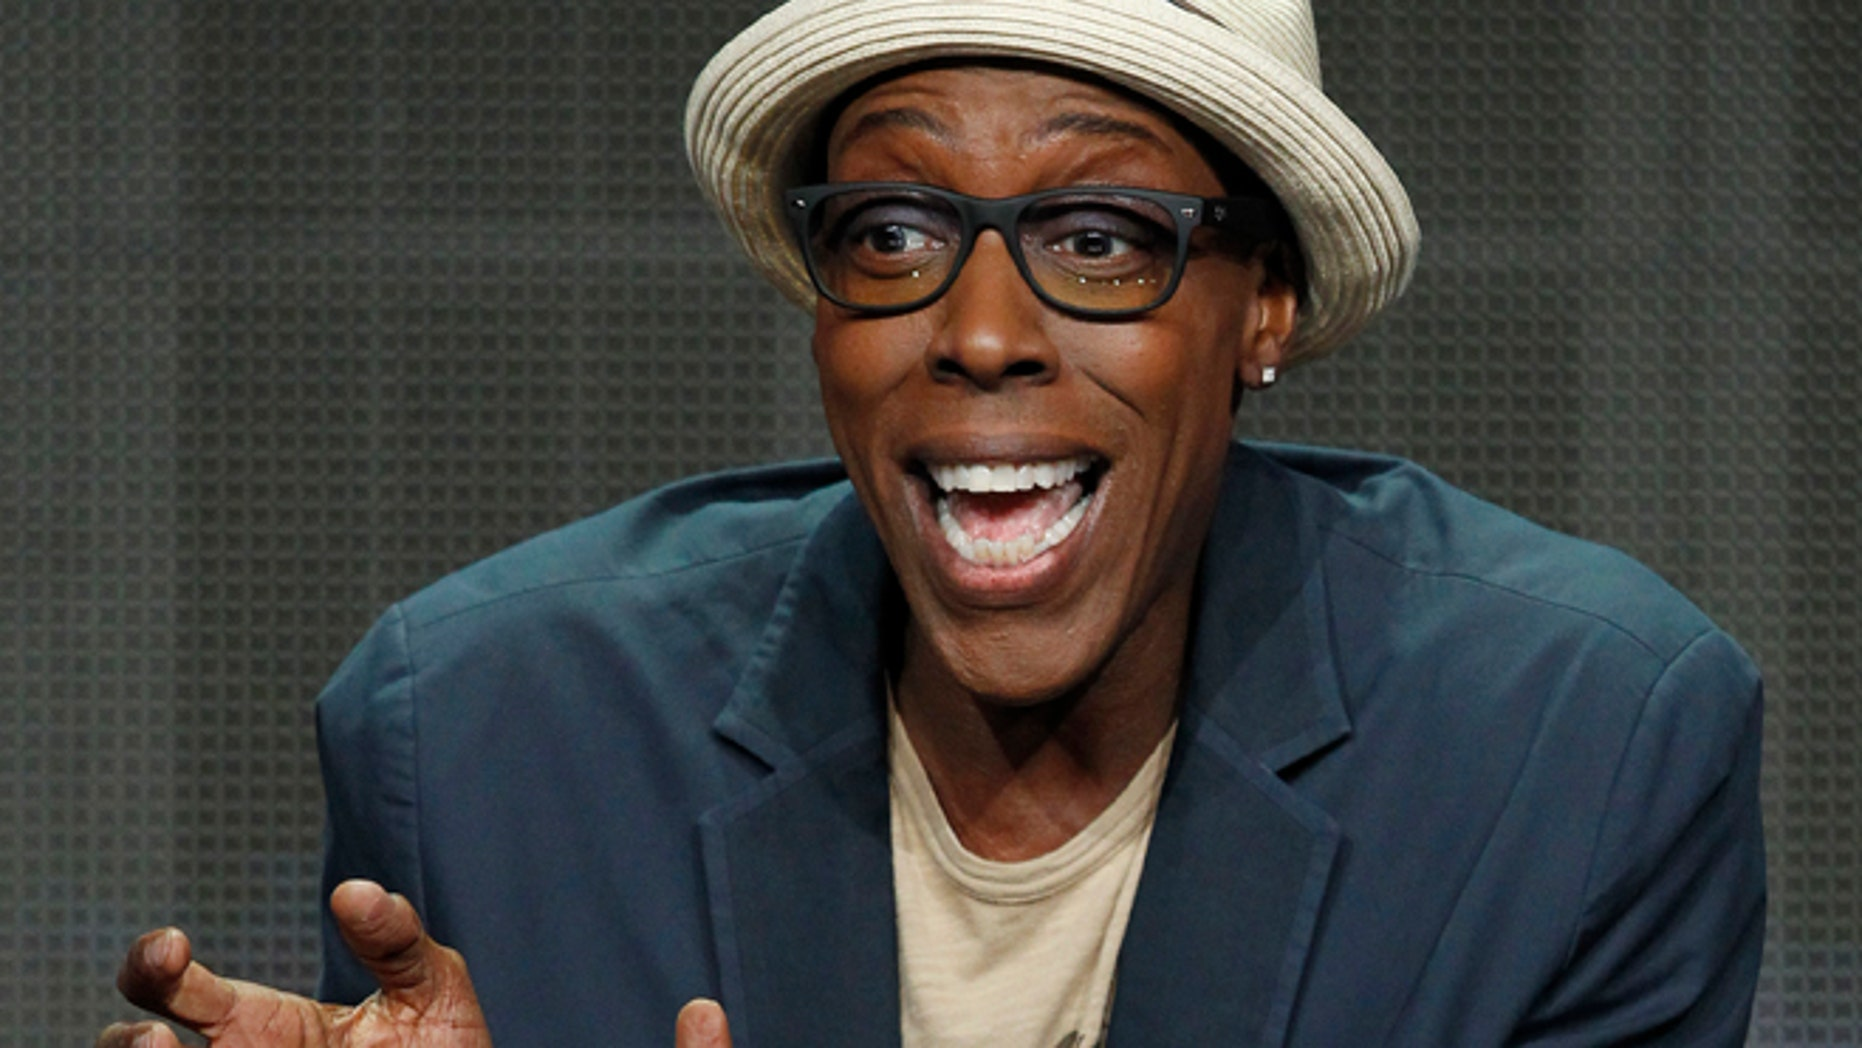 """Host and executive producer Arsenio Hall speaks at a panel for the television series """"The Arsenio Hall Show"""" during the CBS portion of the Television Critics Association Summer press tour in Beverly Hills, California July 29, 2013.  REUTERS/Mario Anzuoni (UNITED STATES - Tags: ENTERTAINMENT) - RTX124AV"""